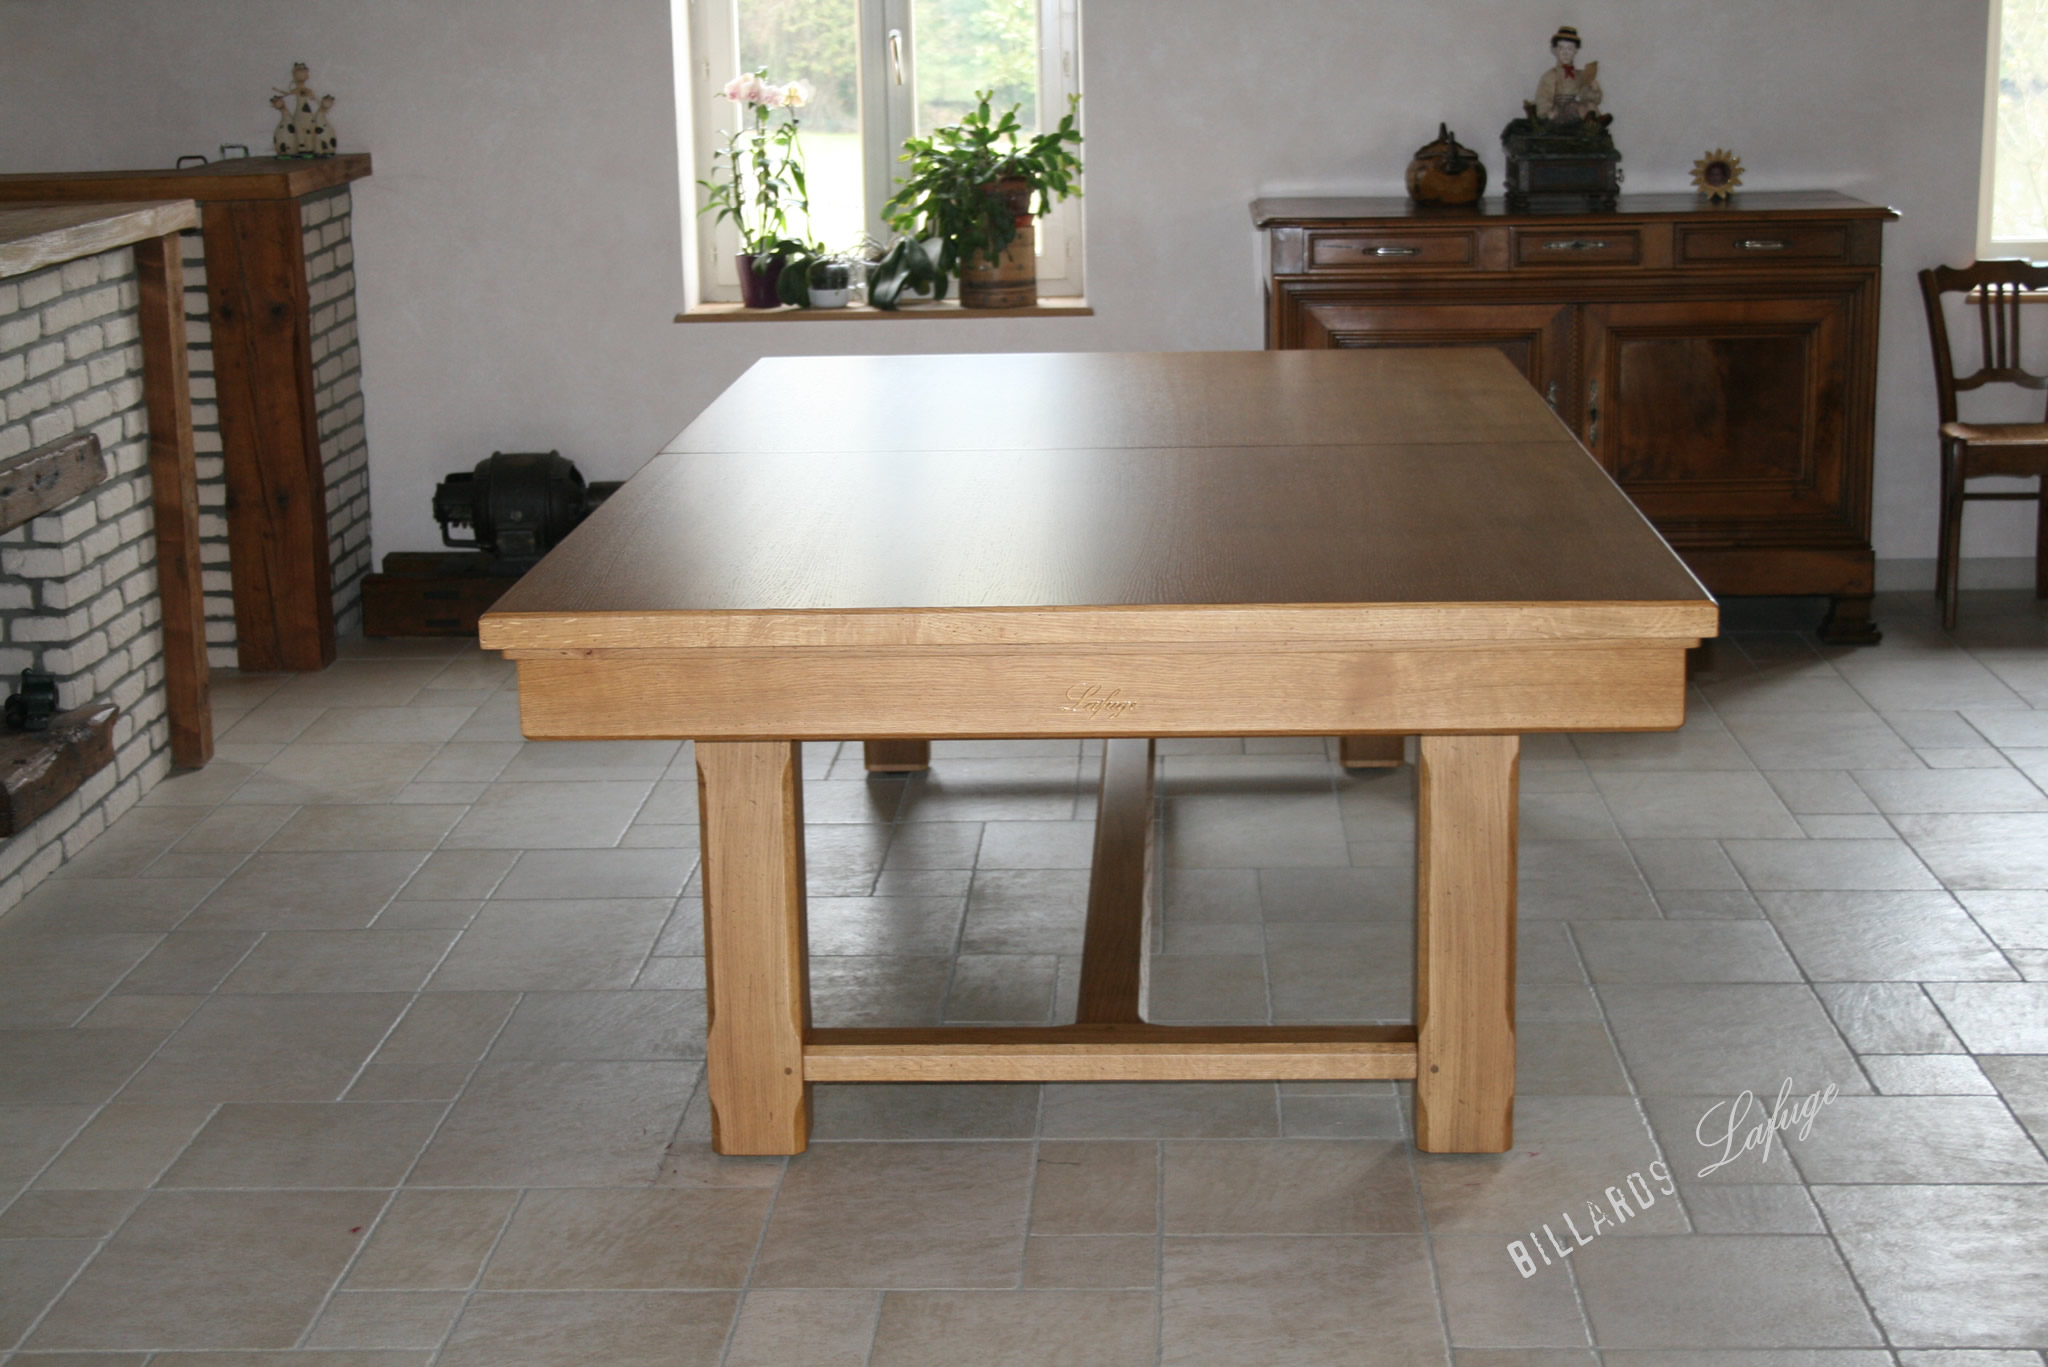 Billard transformable en table - Billard transformable en table ...